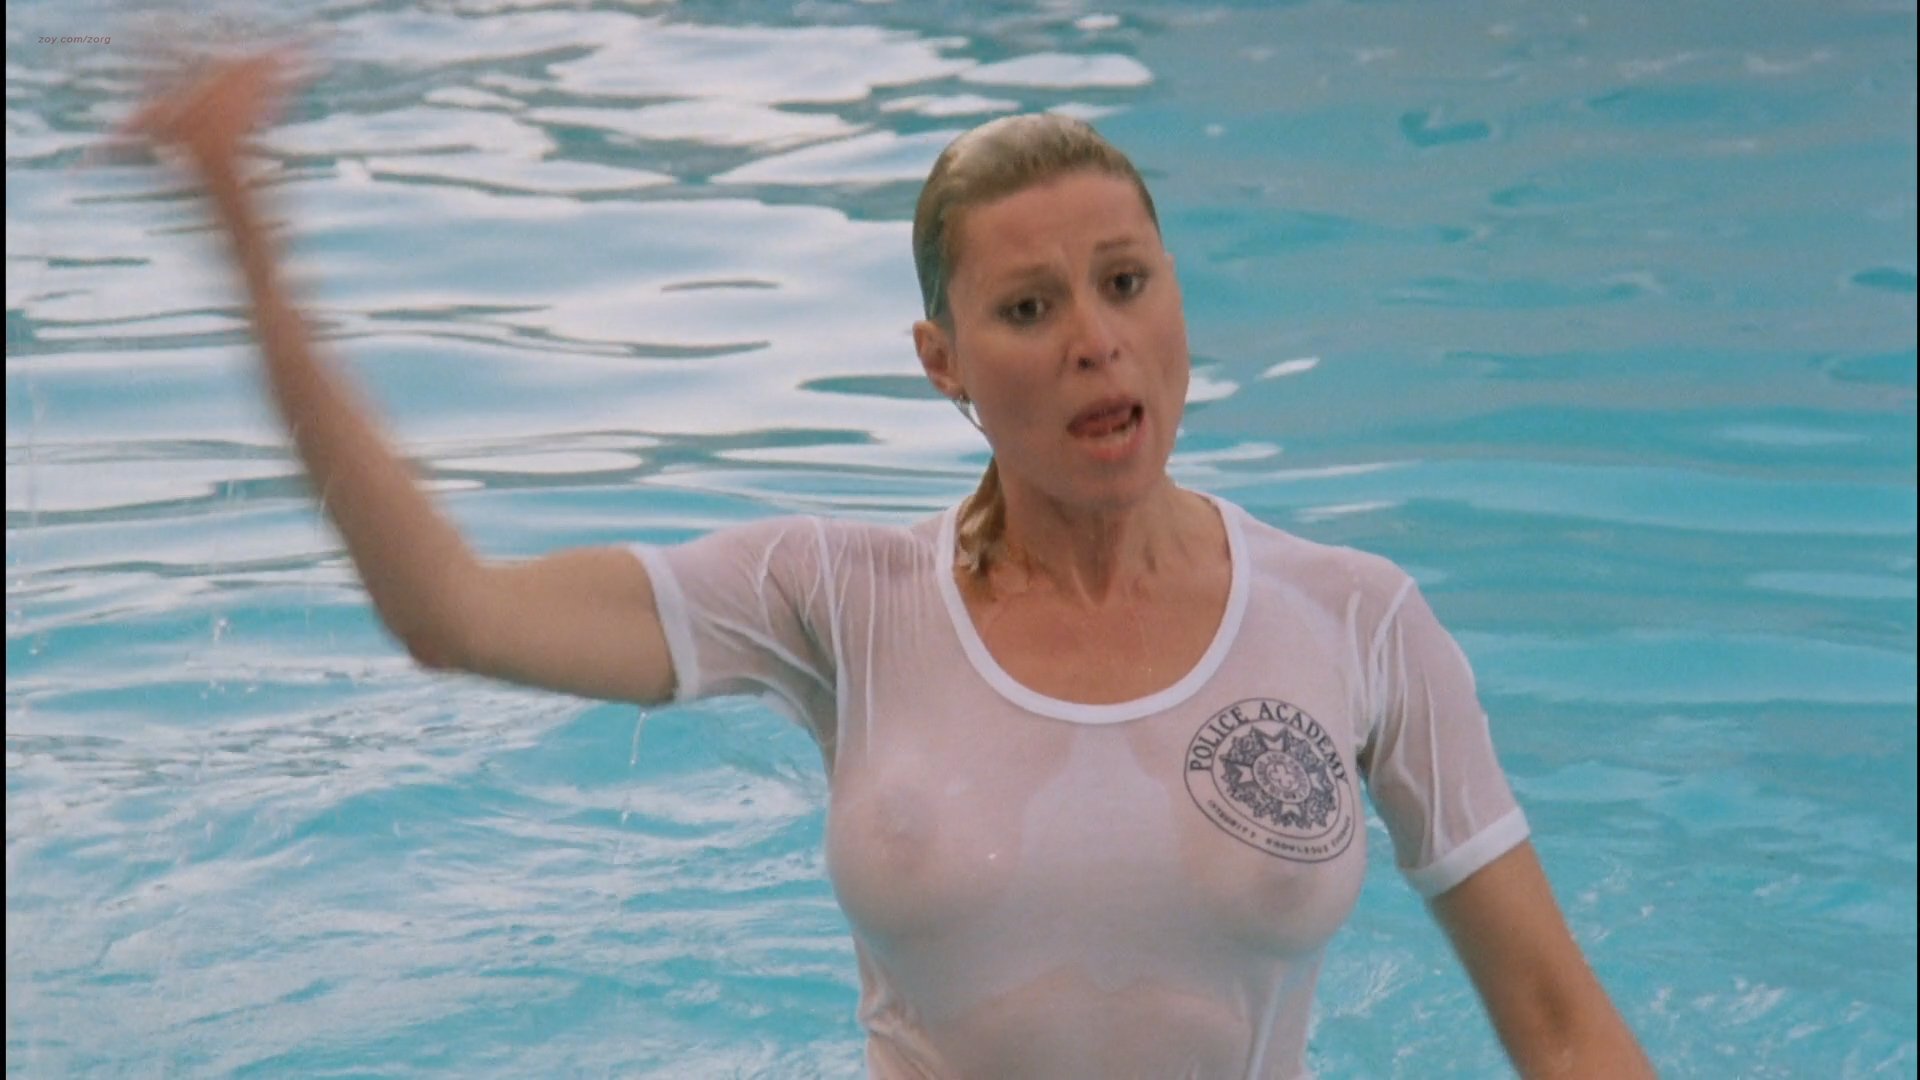 Police academy leslie easterbrook nude